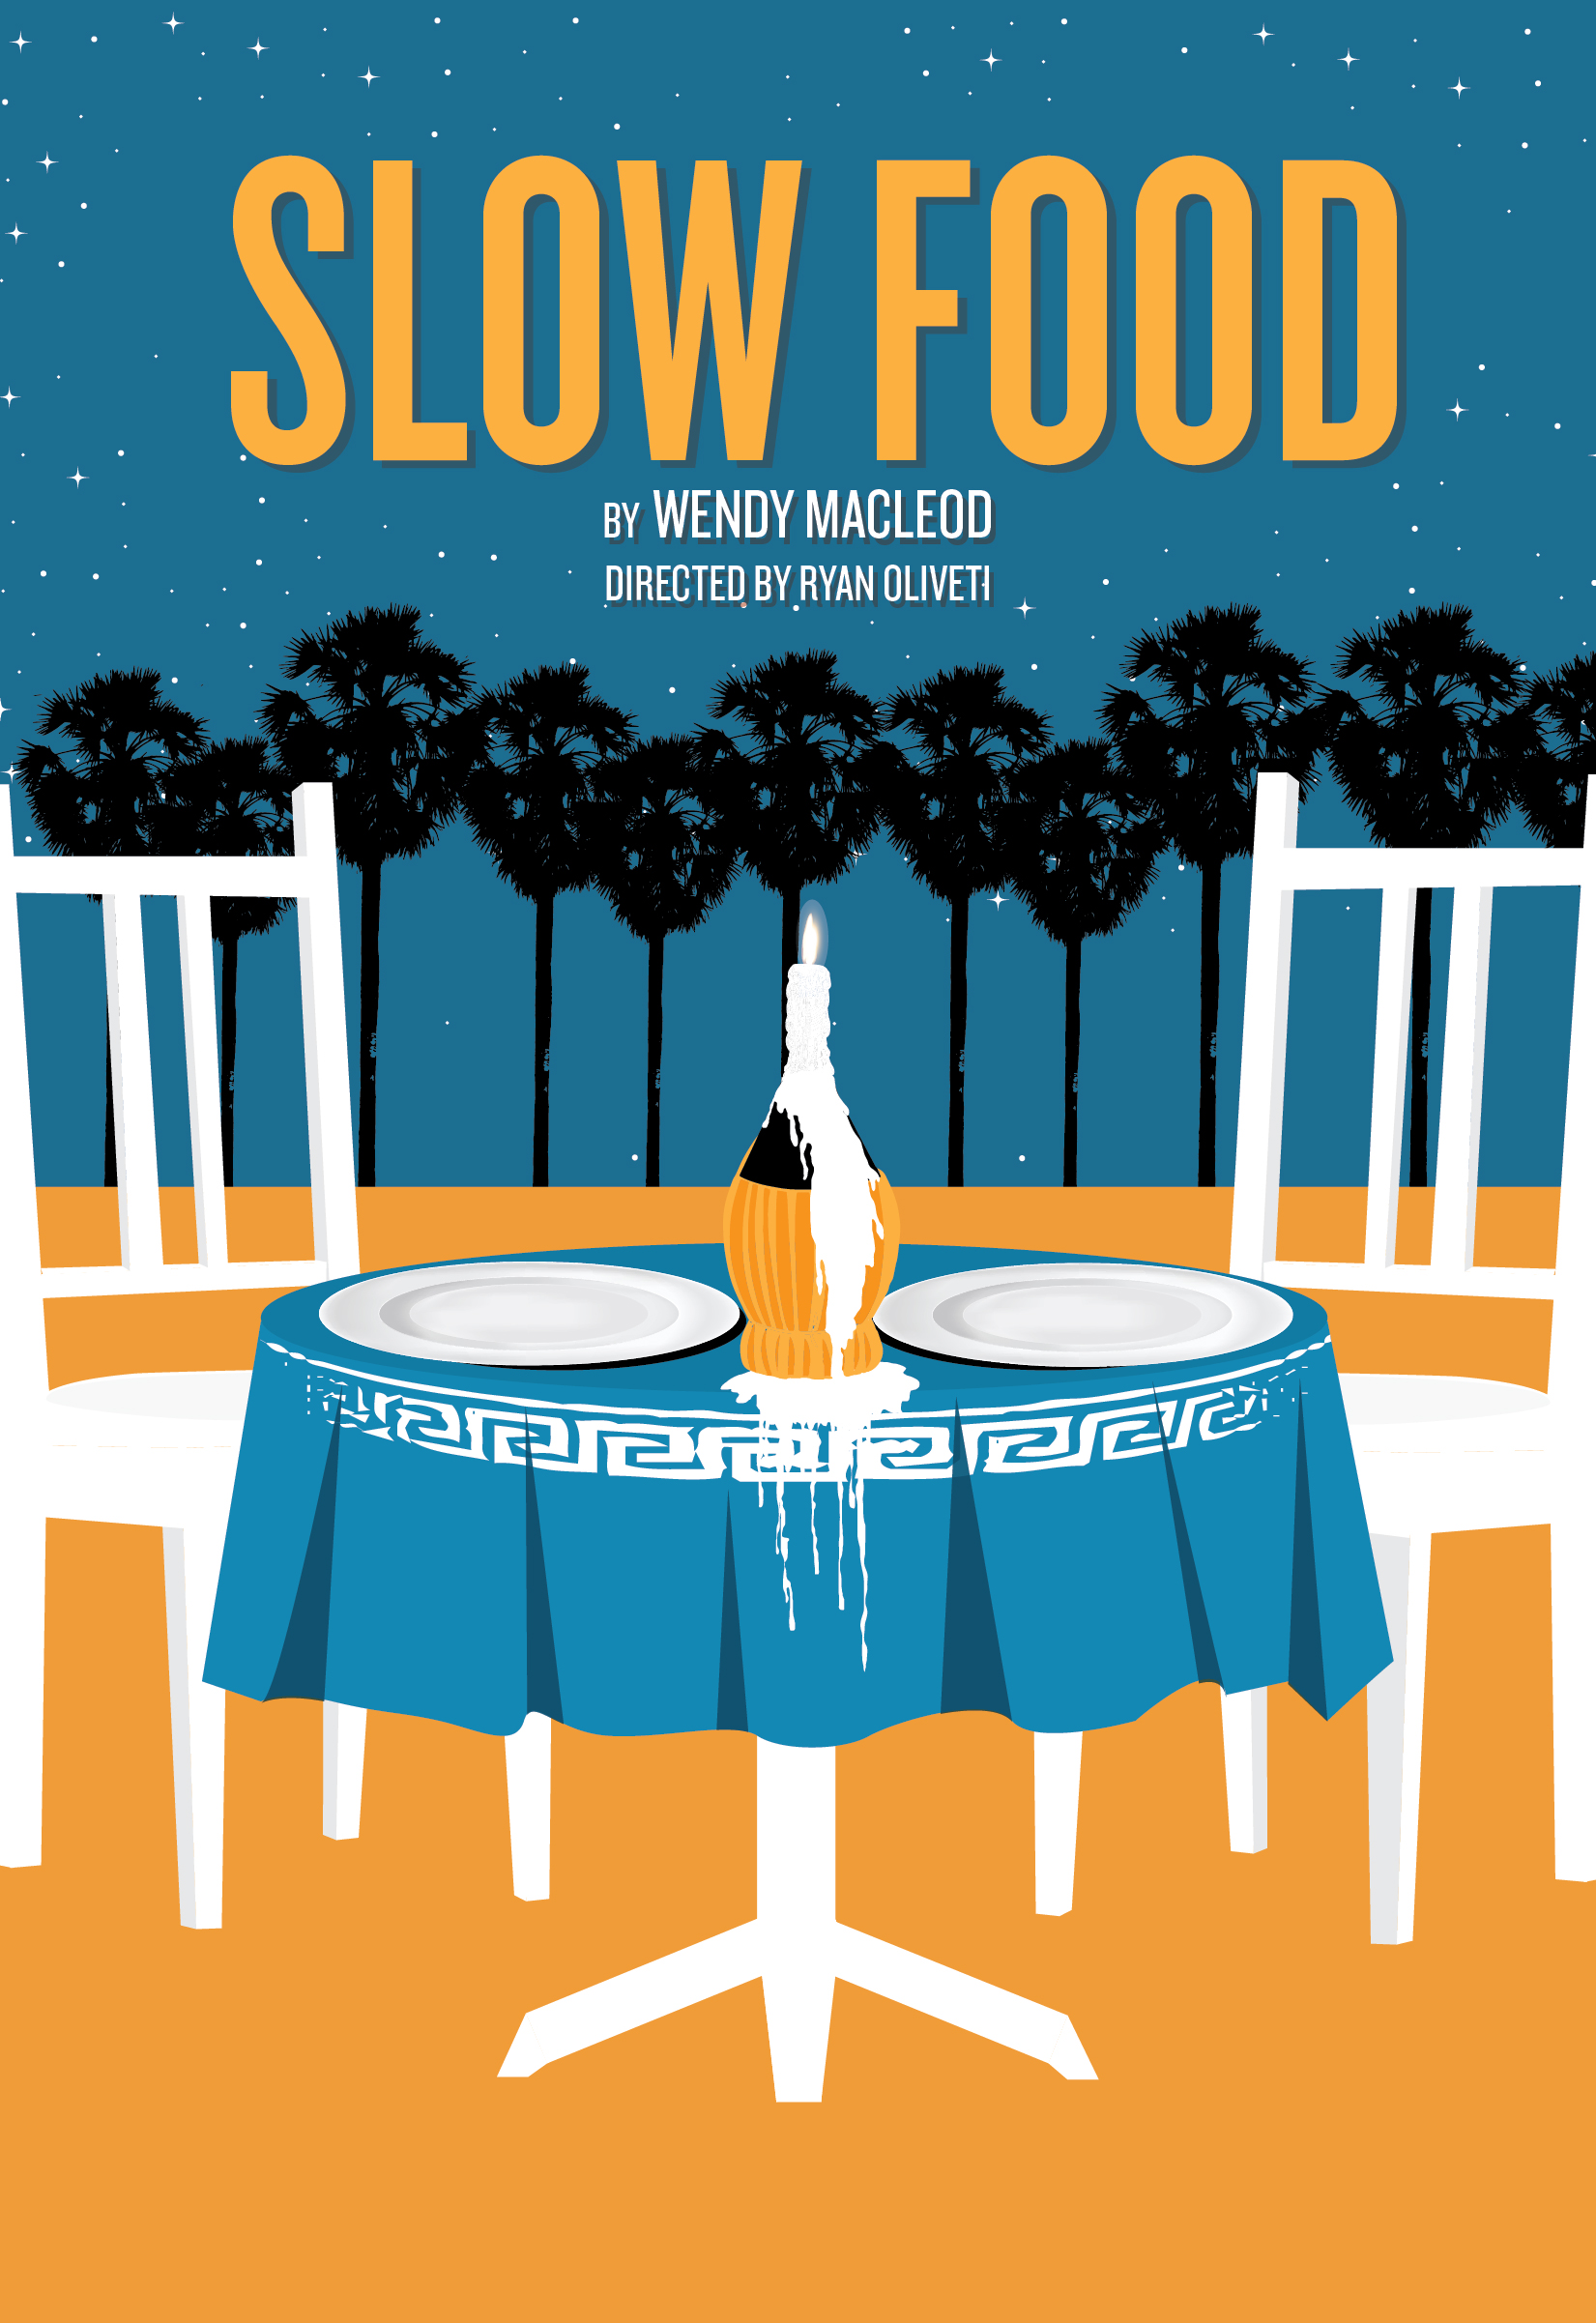 art-text_slowfood